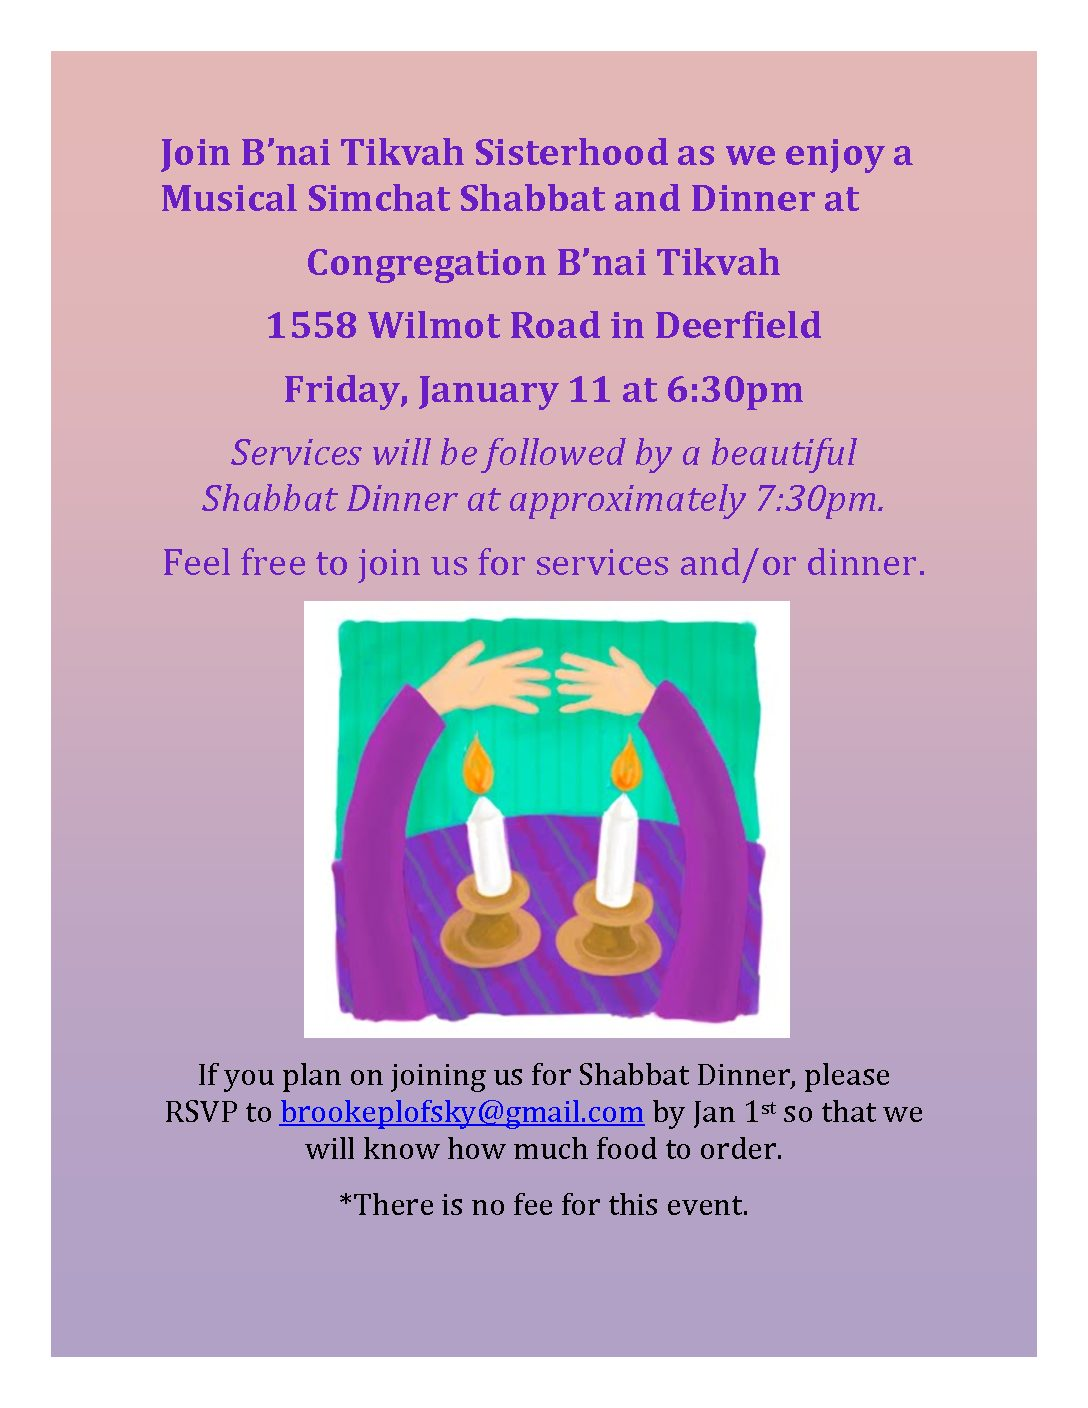 Sisterhood Musical Simchat Shabbat and Dinner